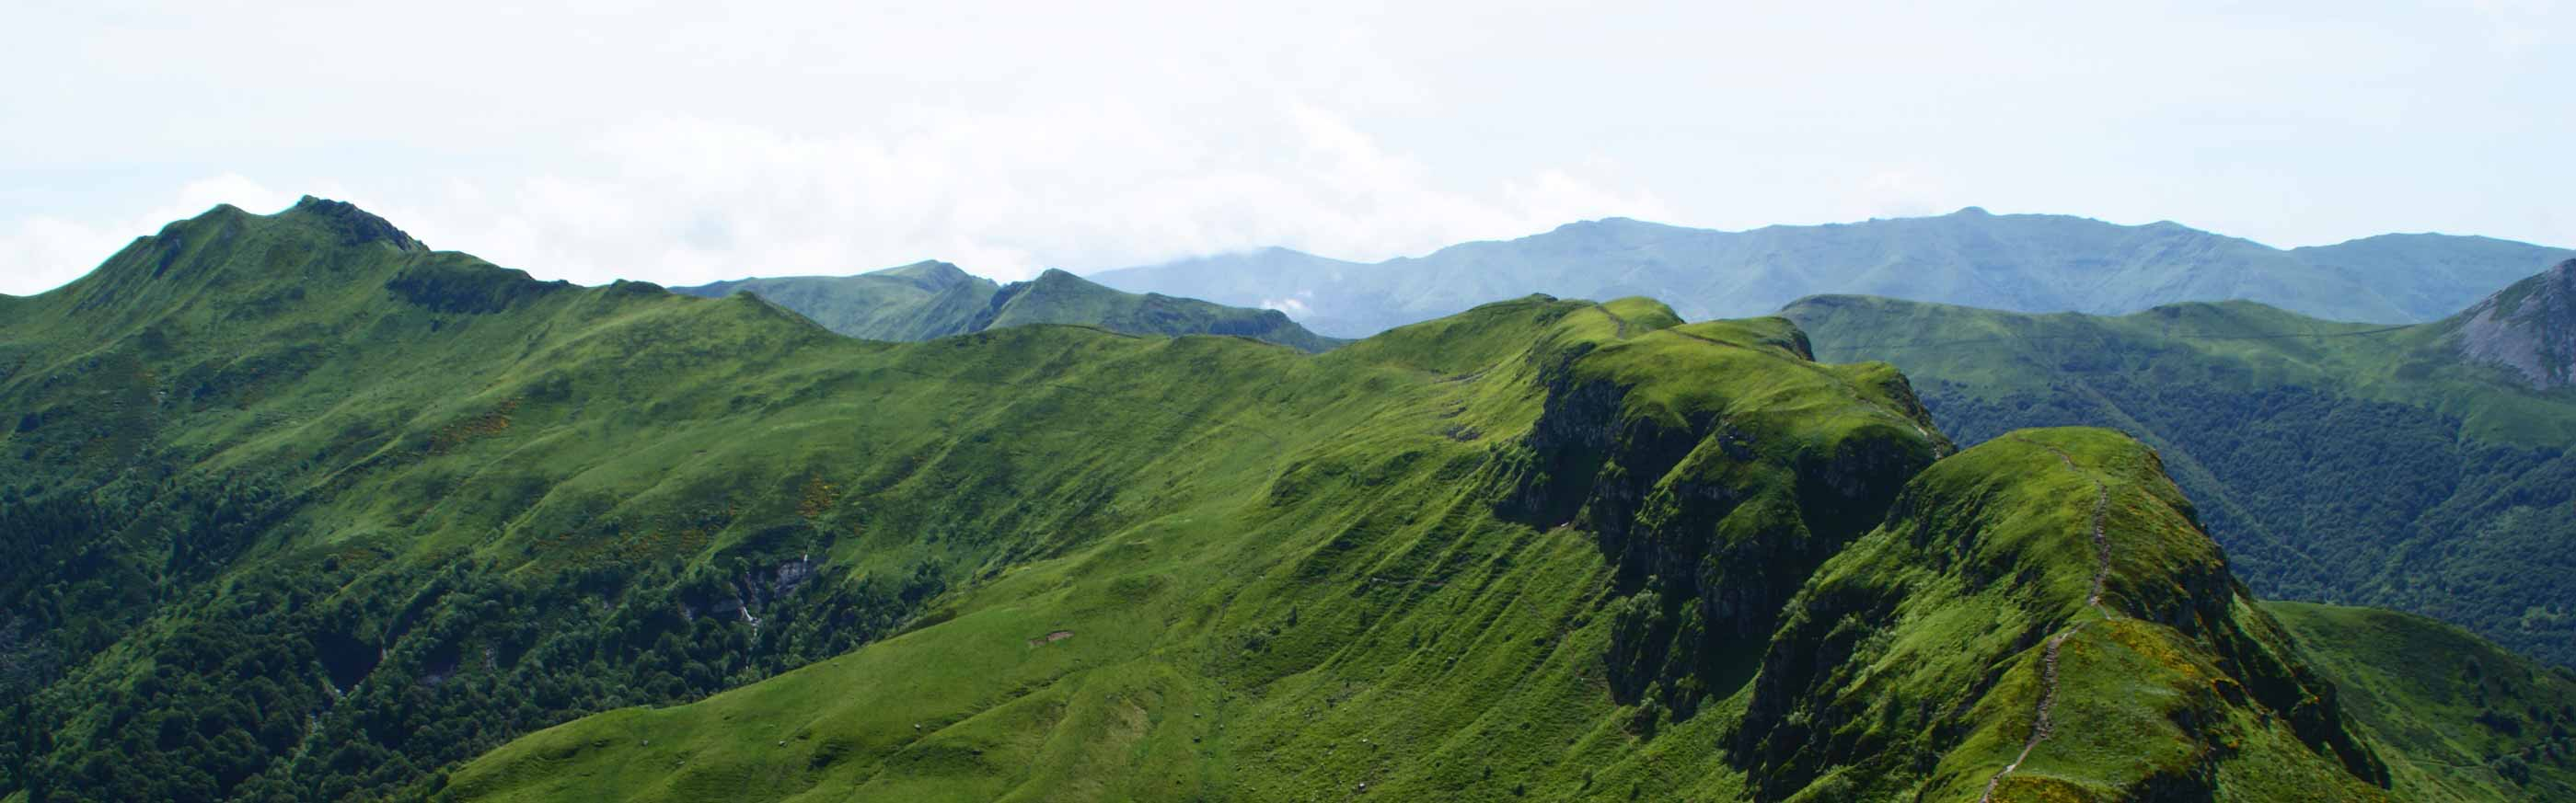 paysage cantal volcan auvergne